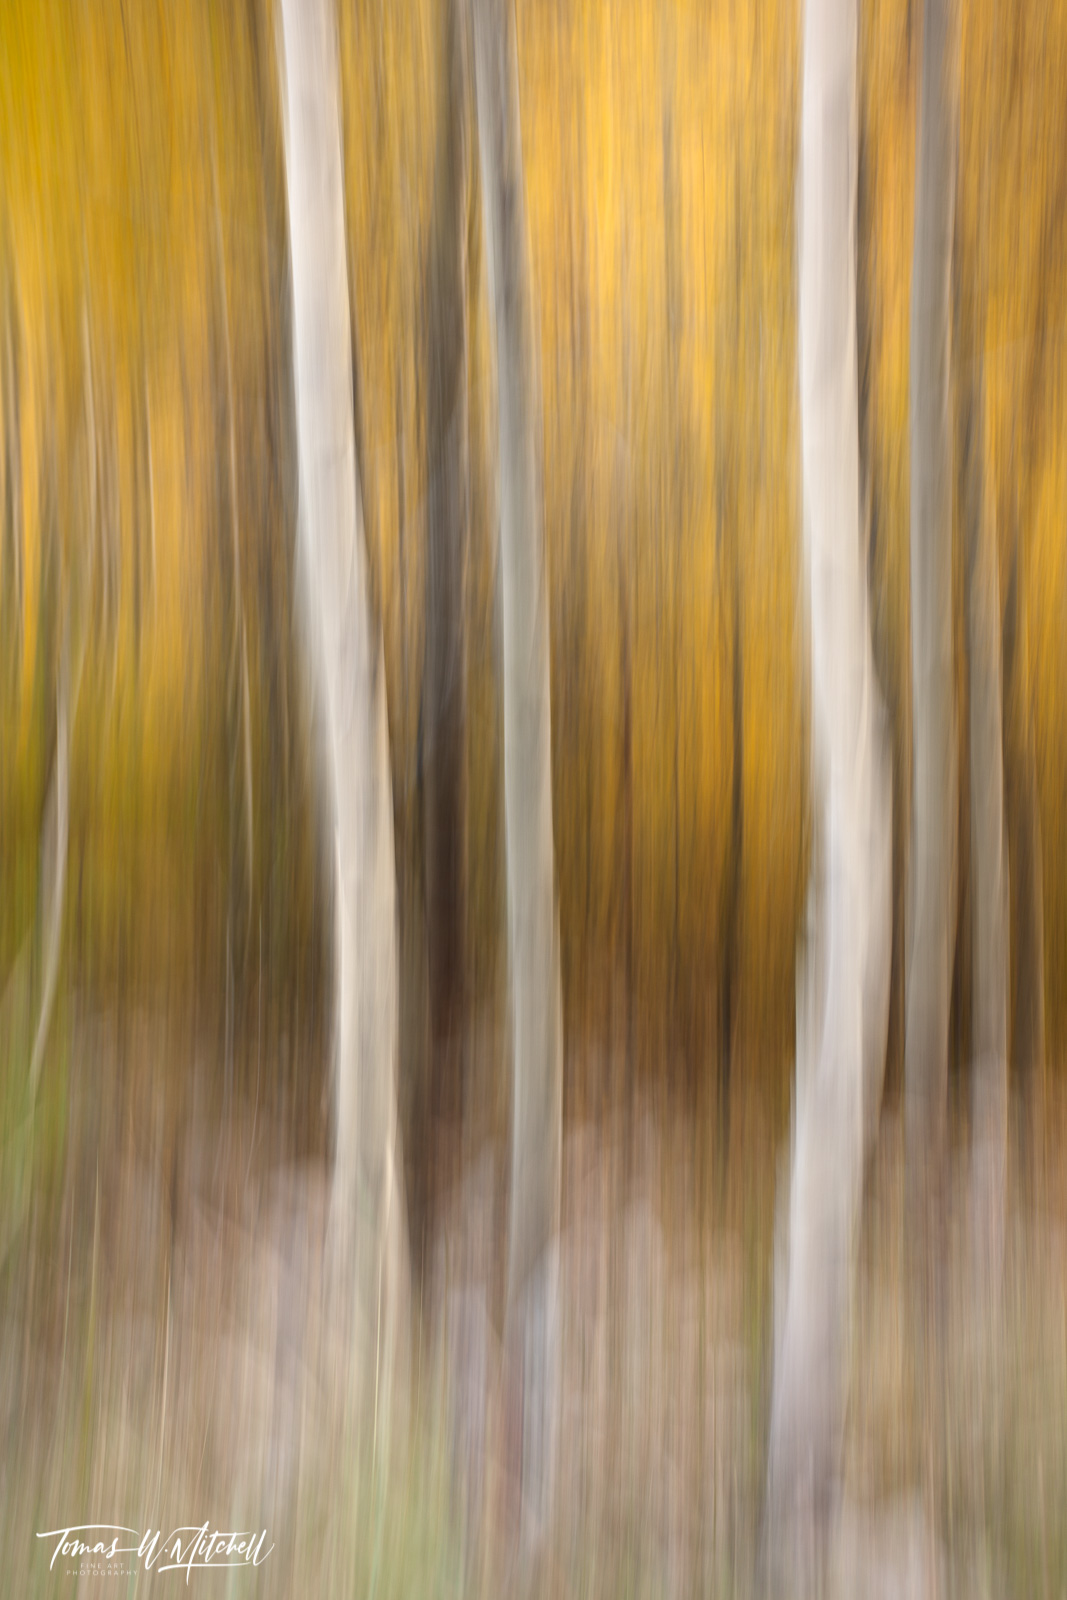 limited edition, fine art, lamoille canyon, nevada, abstract, humboldt national forest, trees, ICM, photograph, grass, green, golden, yellow quaking aspens, photo